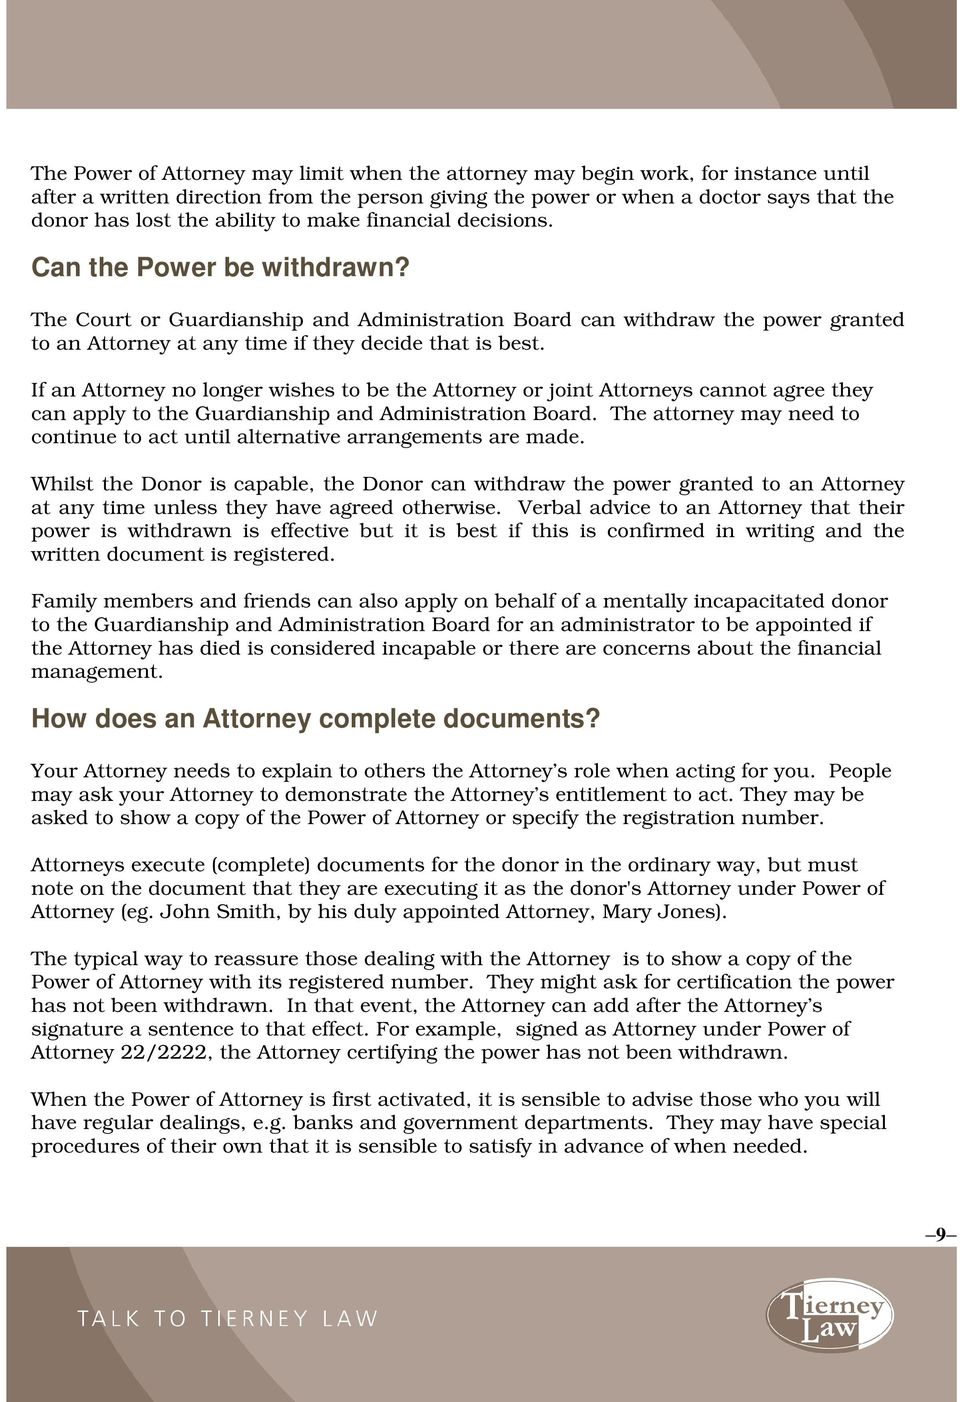 The Court or Guardianship and Administration Board can withdraw the power granted to an Attorney at any time if they decide that is best.